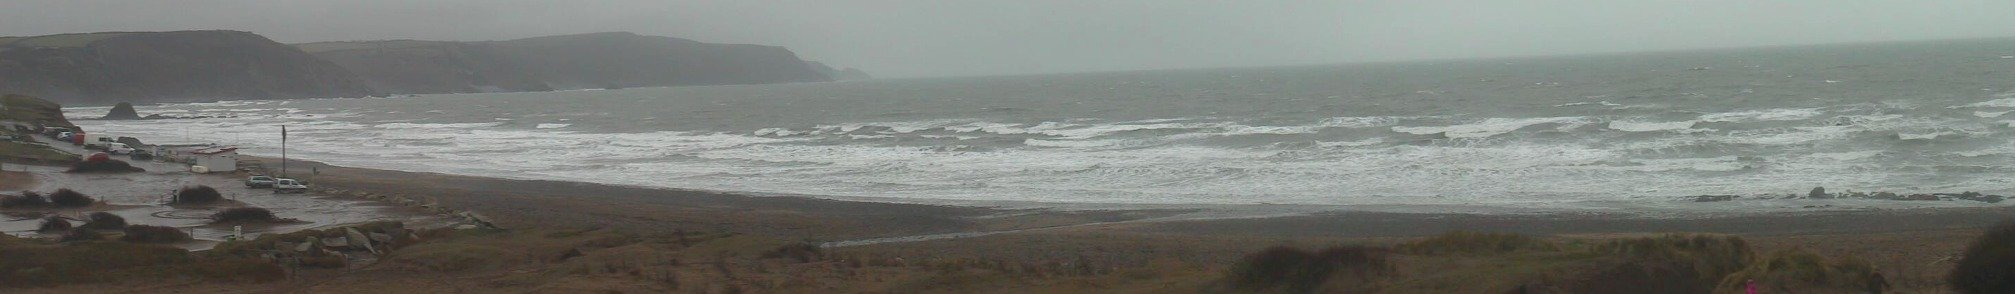 Latest webcam still for Widemouth Bay